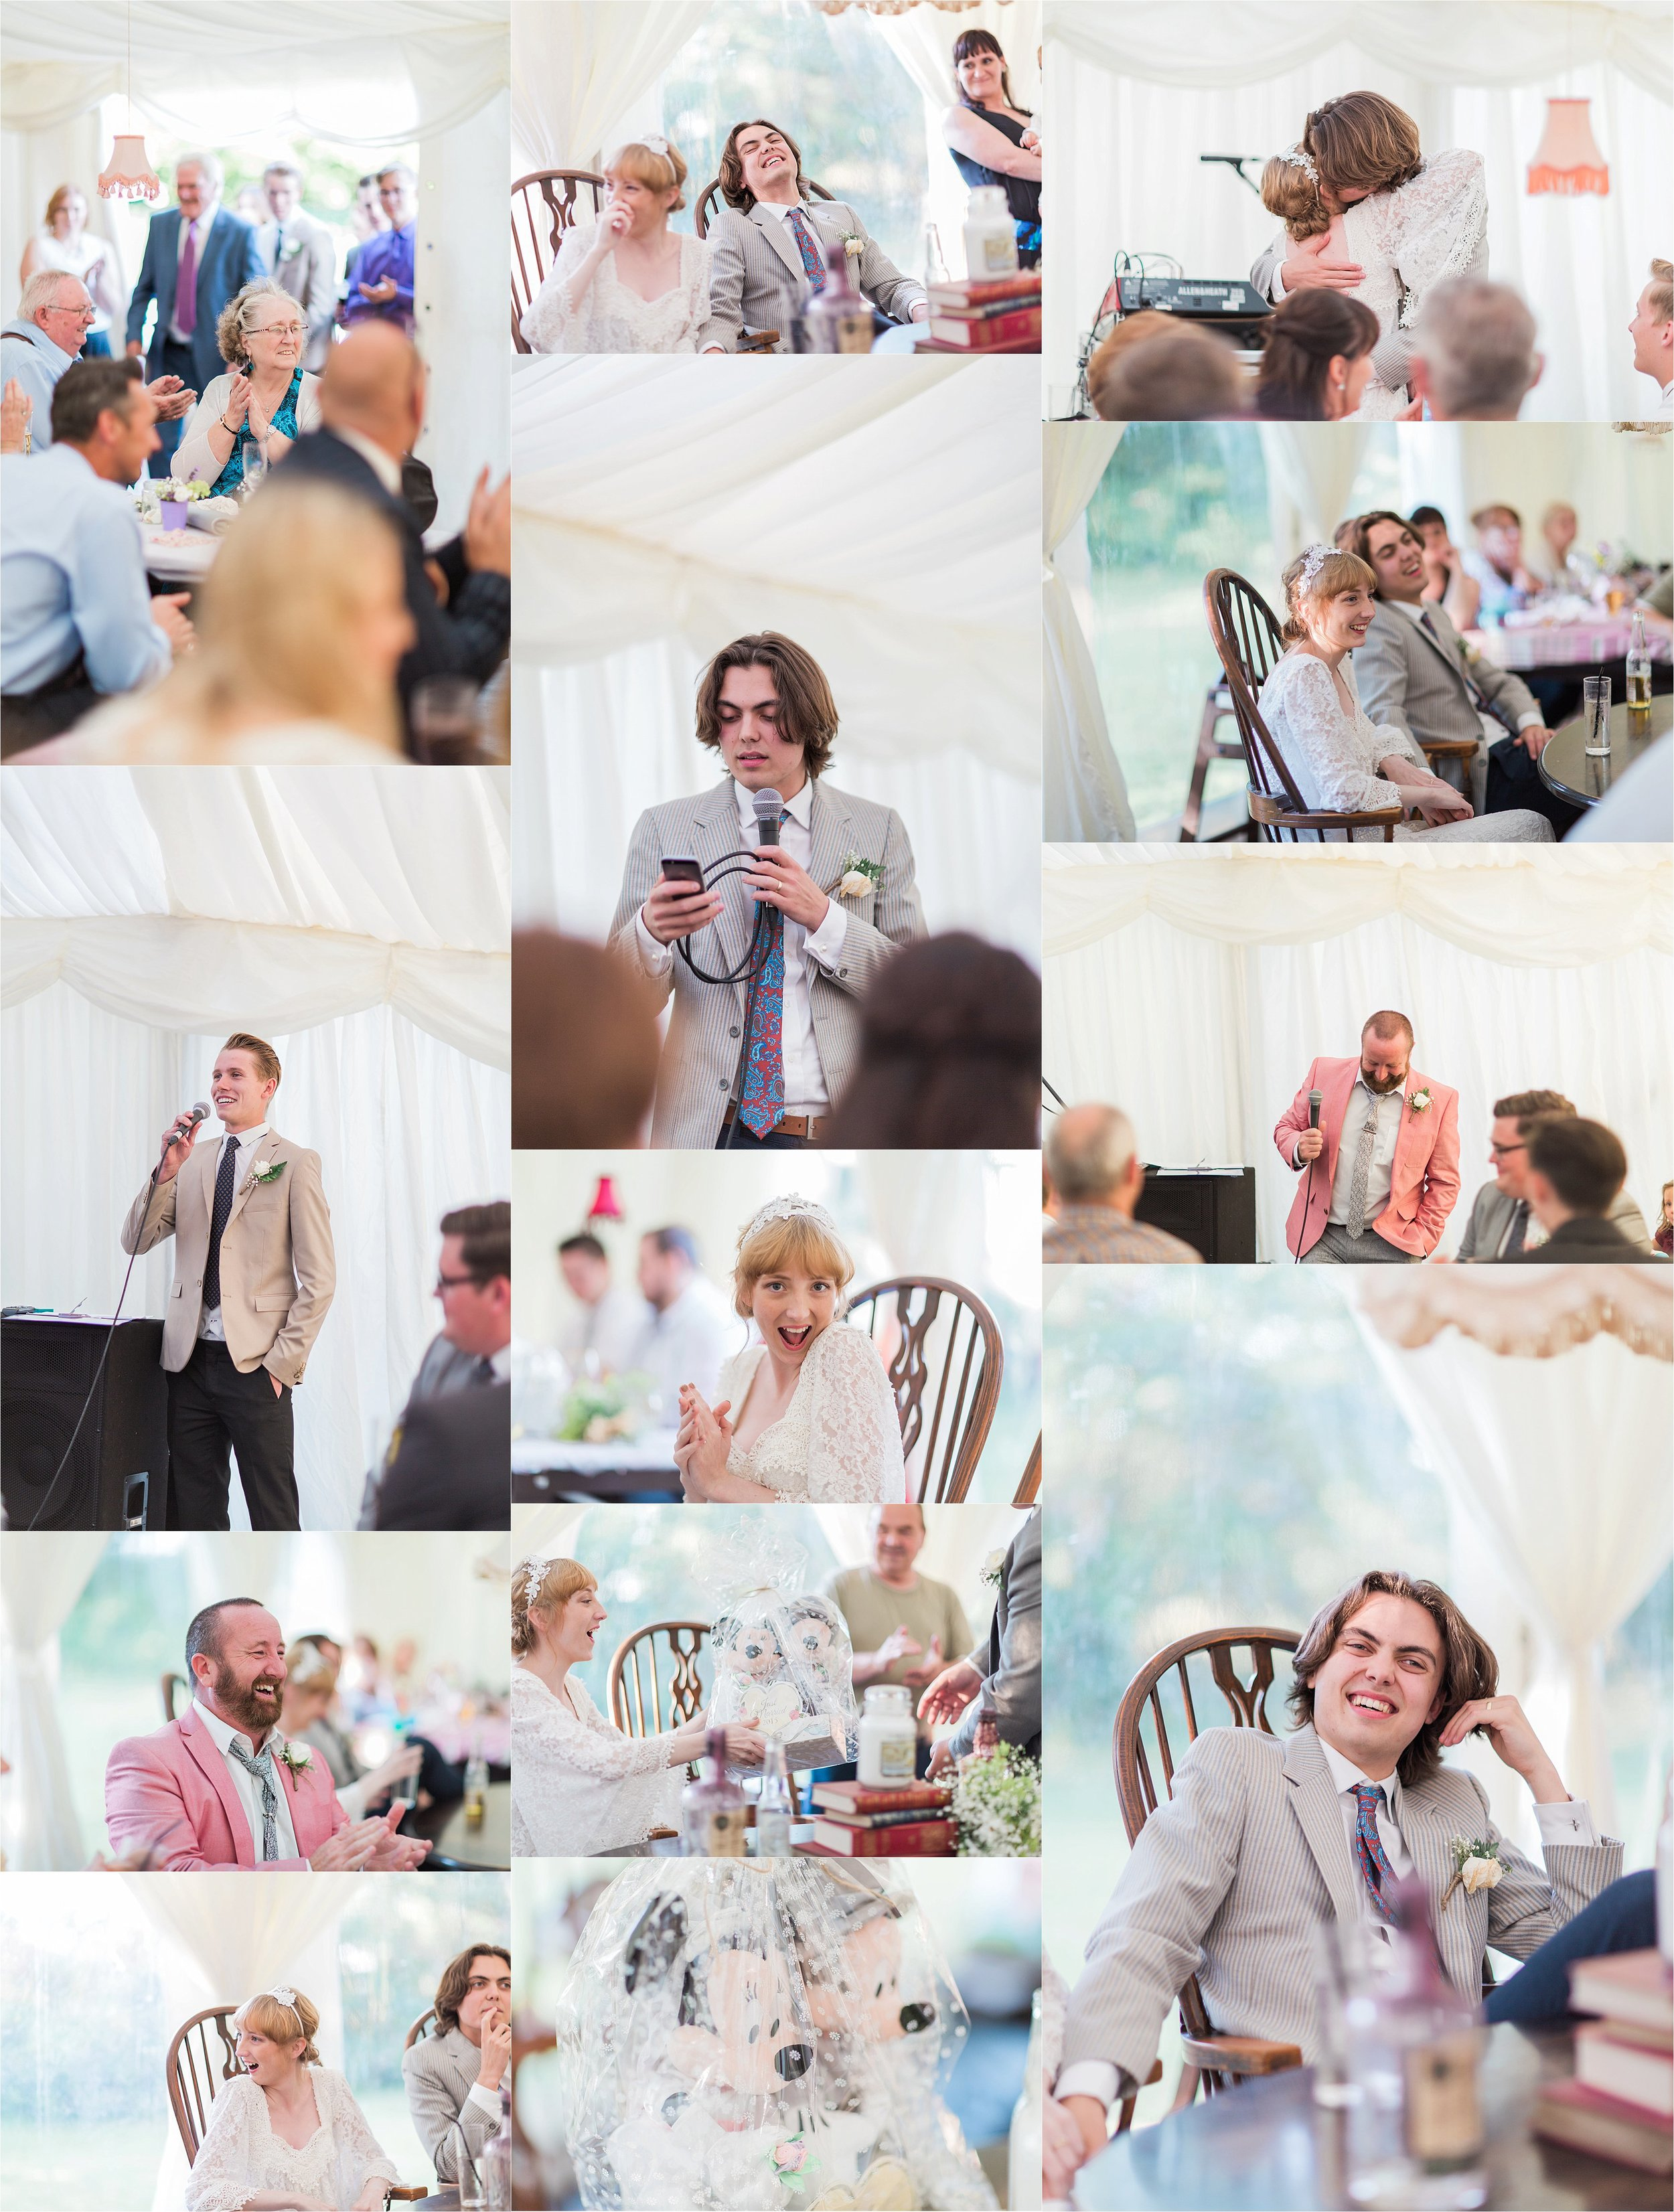 The speeches involved a father's fight for his daughter, an insightful video of the groom, and the cutest gift ever from the Groom to his beautiful new bride.